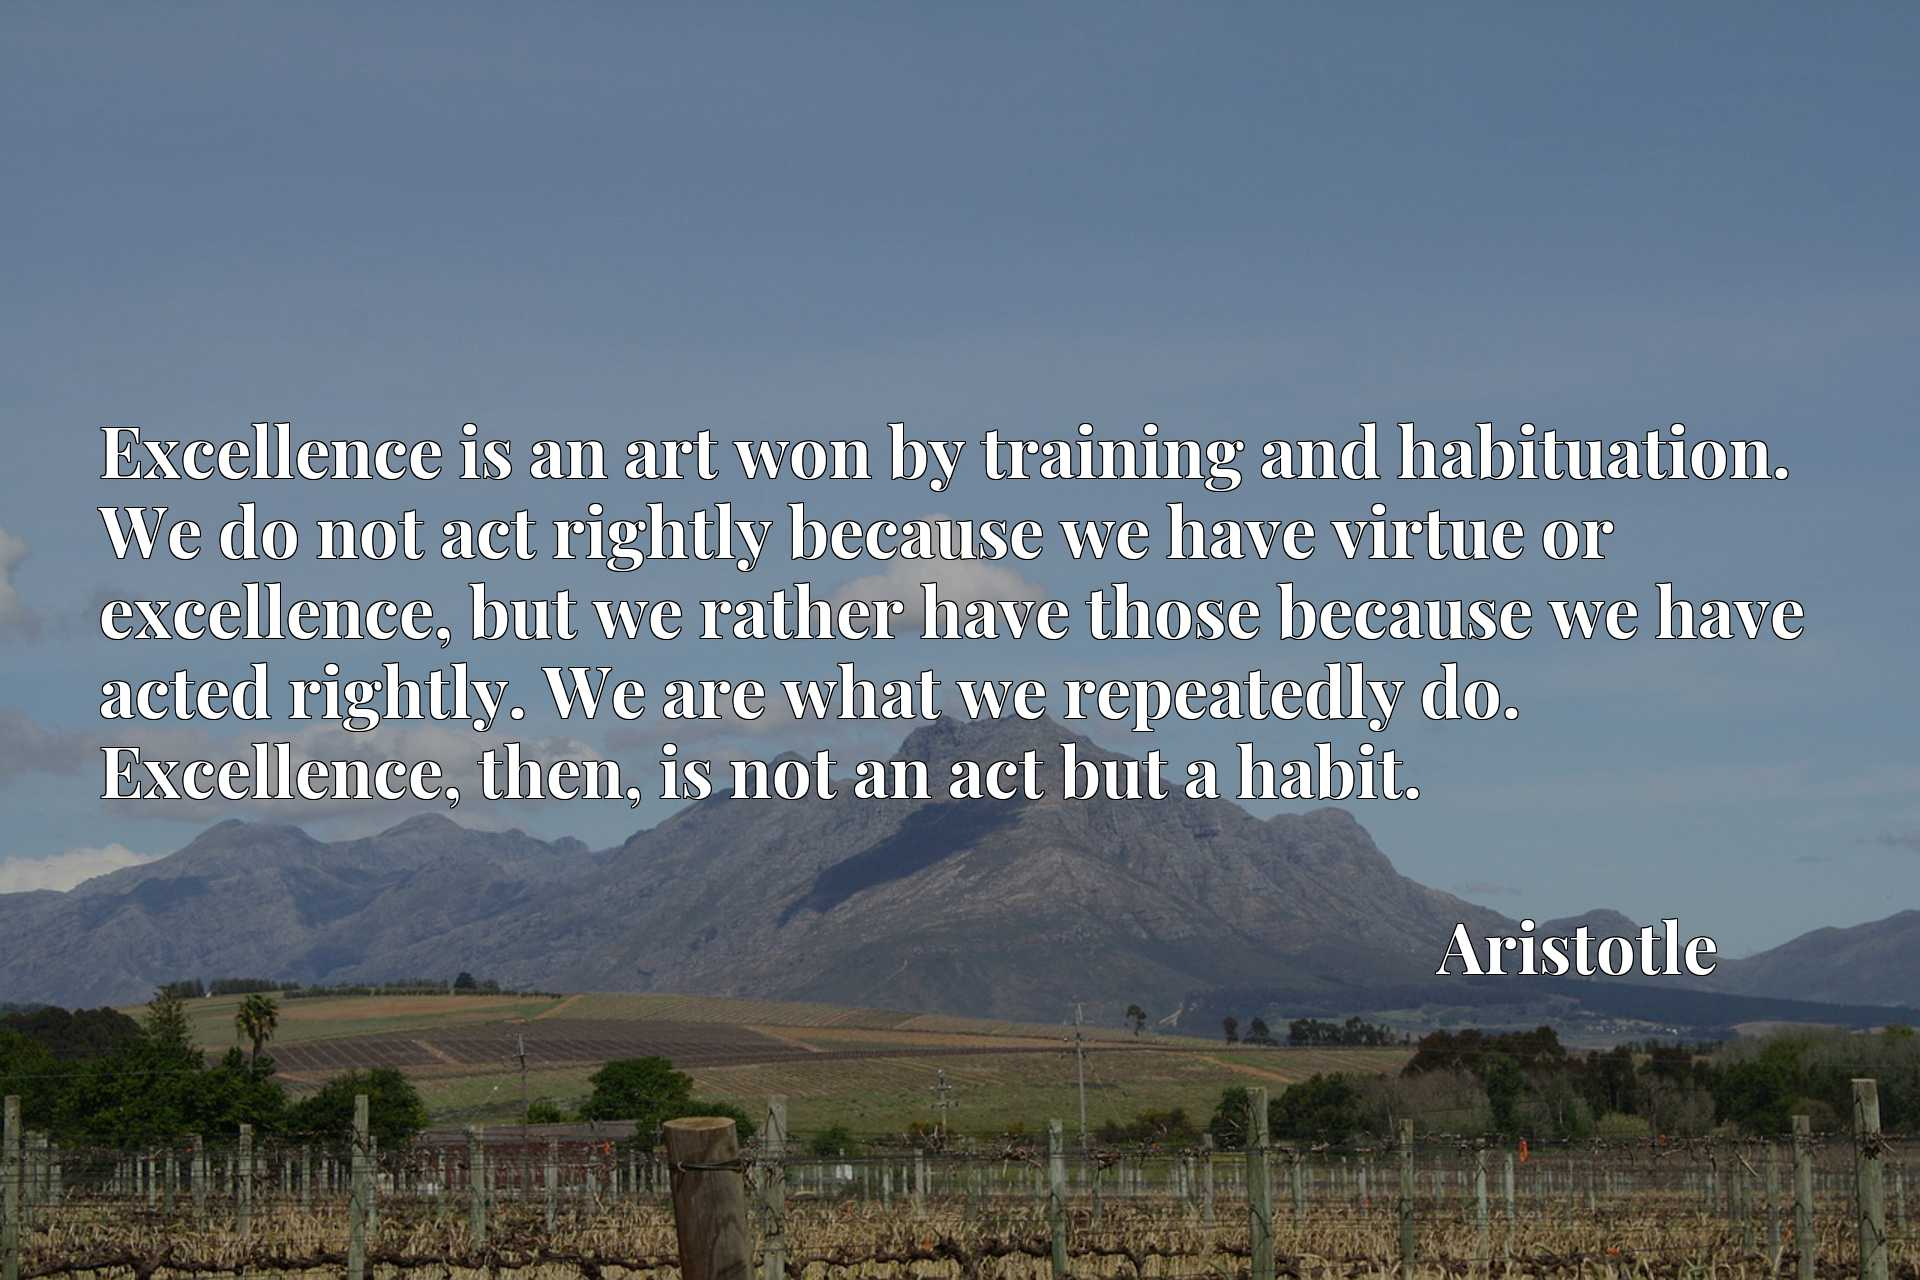 Excellence is an art won by training and habituation. We do not act rightly because we have virtue or excellence, but we rather have those because we have acted rightly. We are what we repeatedly do. Excellence, then, is not an act but a habit.